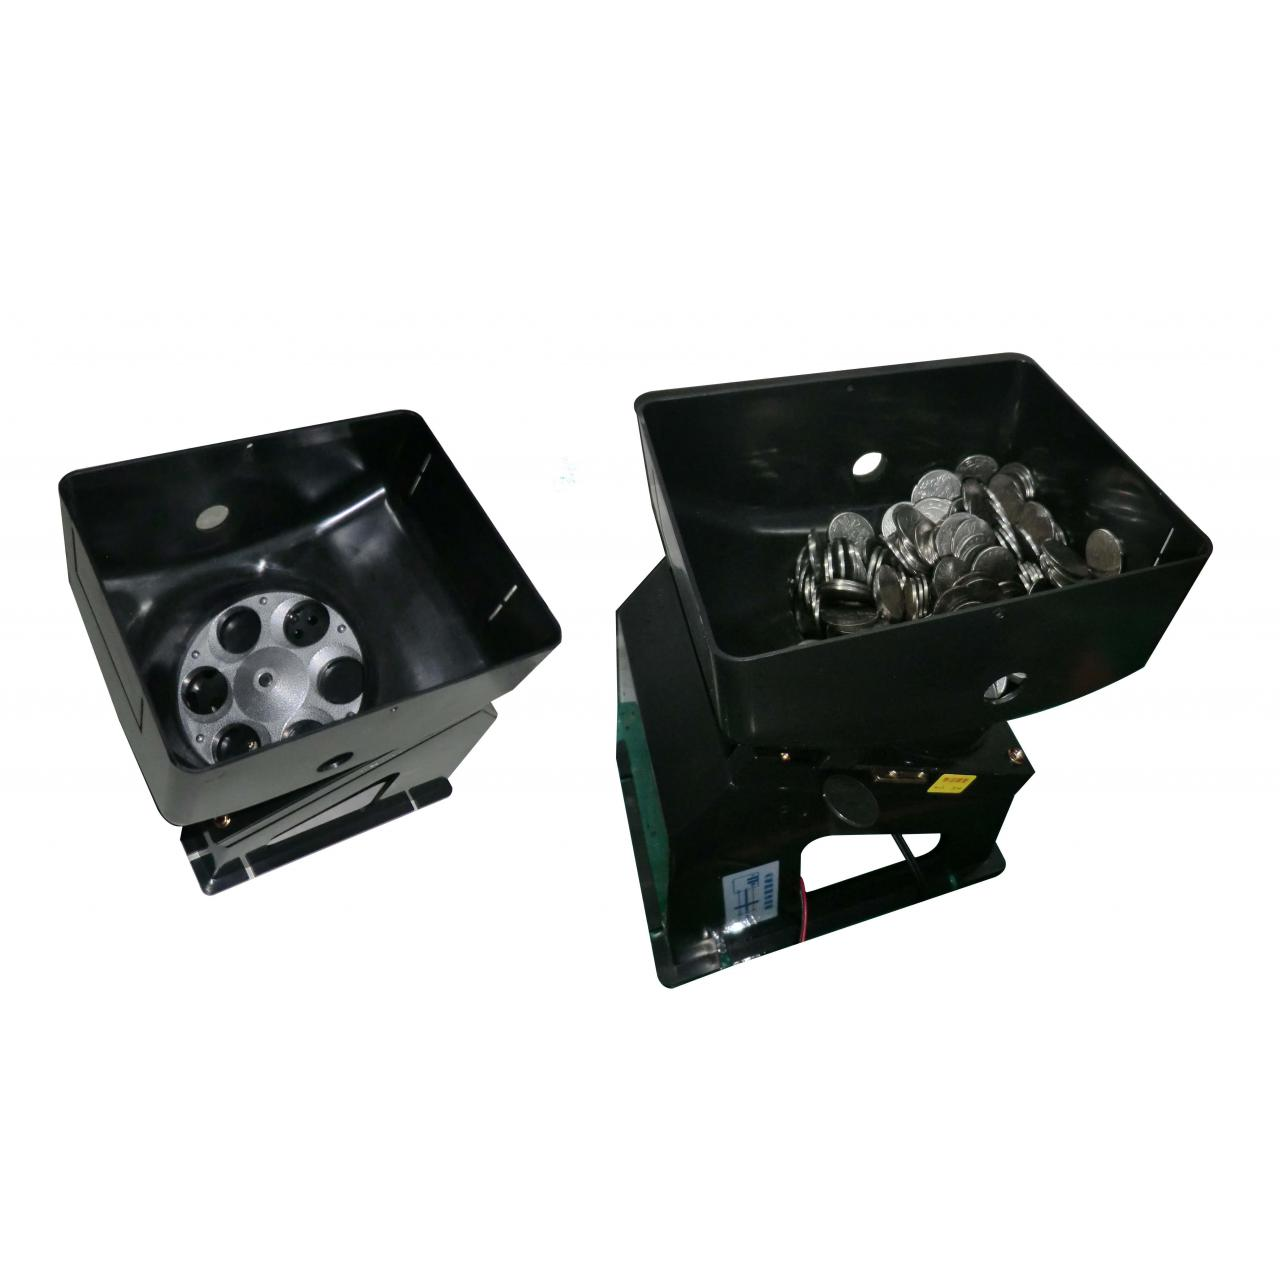 Buy cheap GD666 6 Hole coin hopper counter for arcade jamma slot game or vending machine sorters from wholesalers